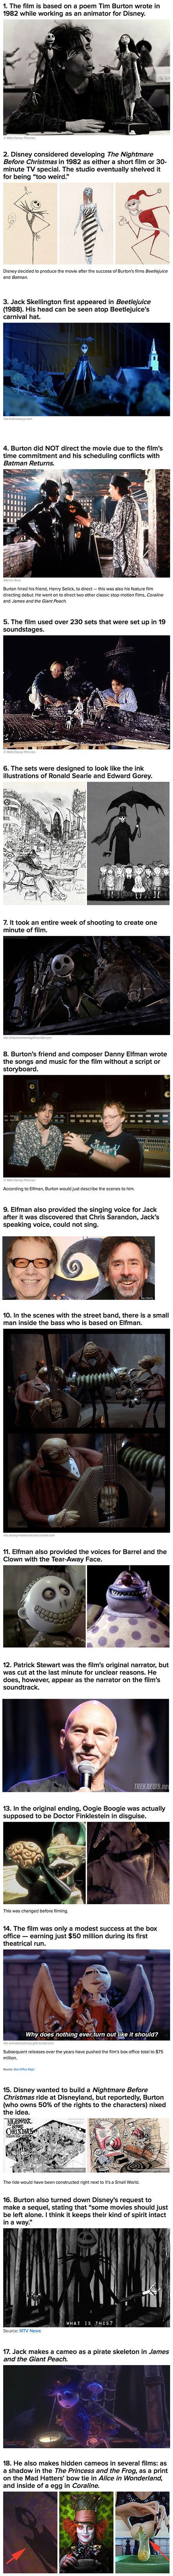 Here are some interesting things you probably did not know about The Nightmare Before Christmas. I really like Tim Burton and Danny Elfman!!!